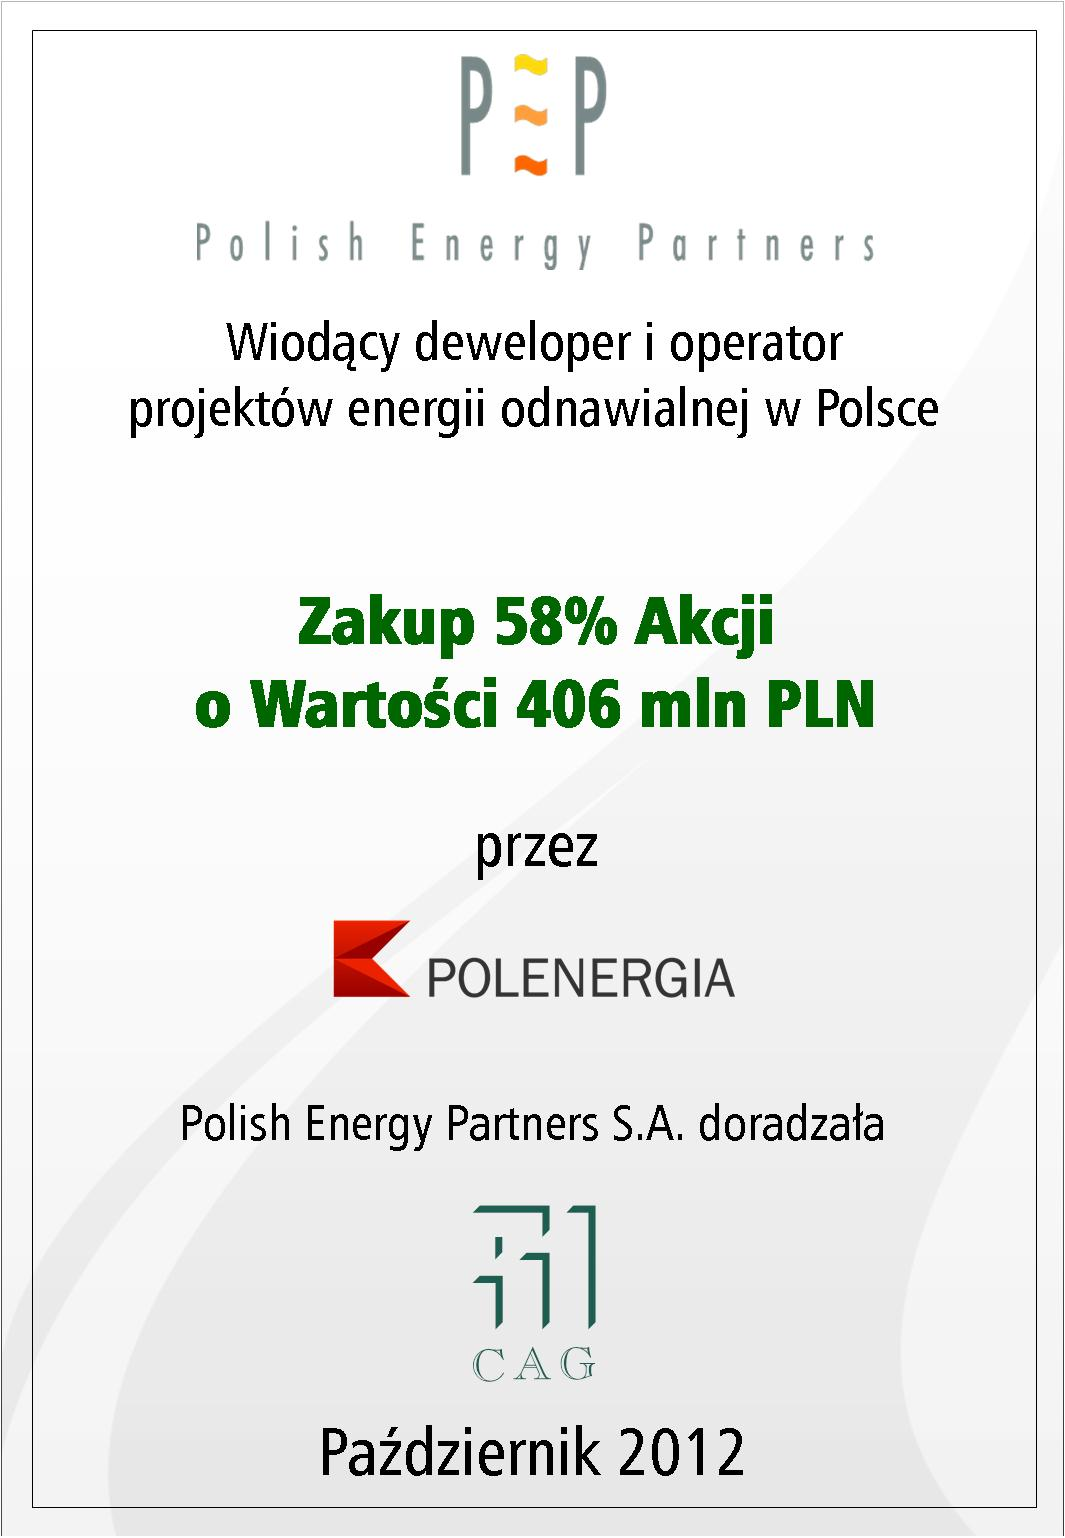 Polish Energy Partners